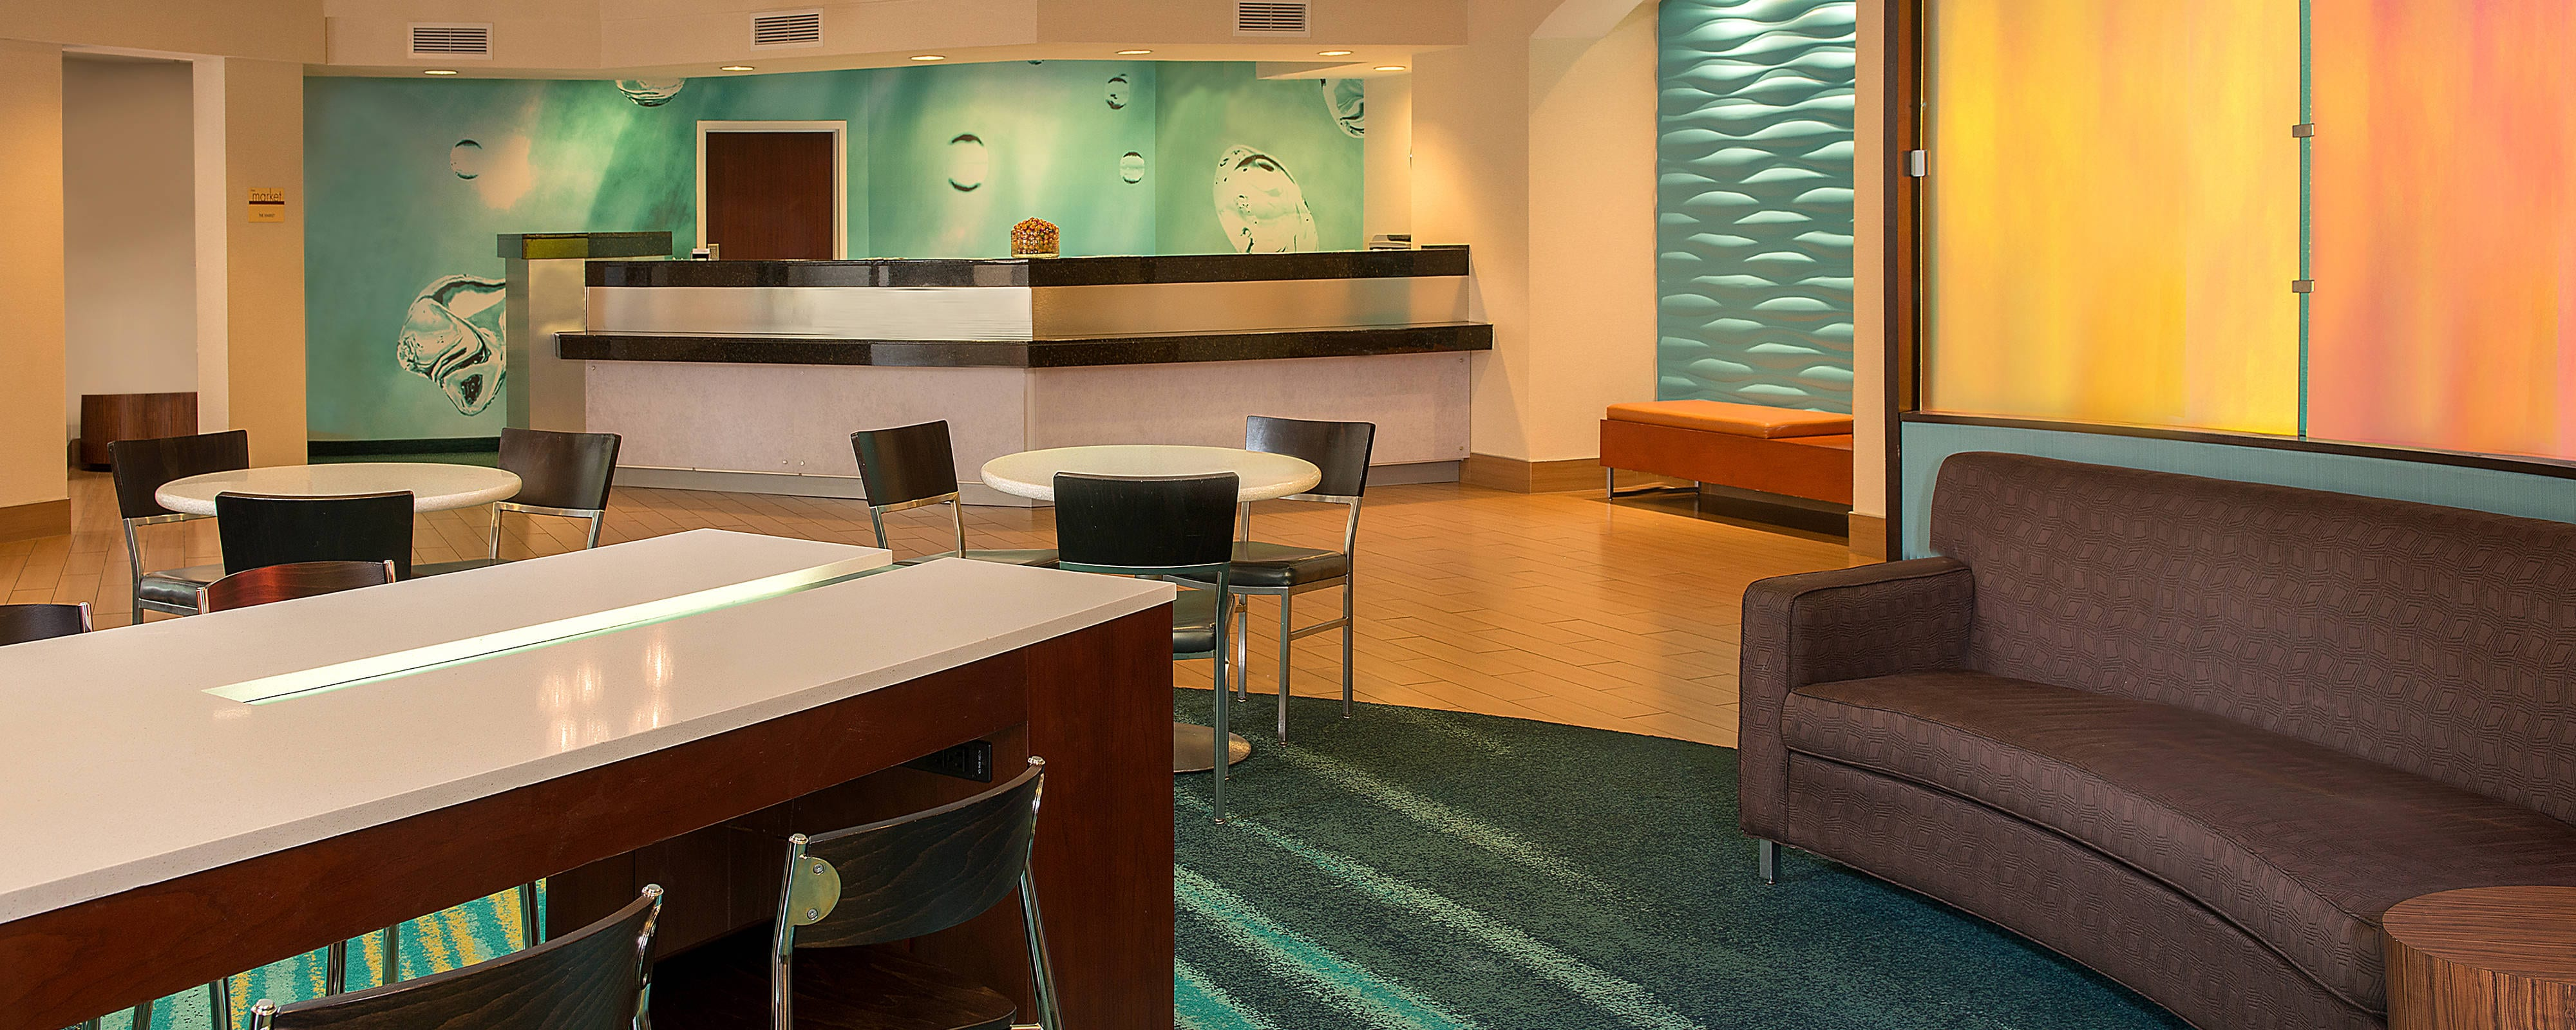 RDU Airport Hotels | SpringHill Suites Raleigh-Durham Airport ...